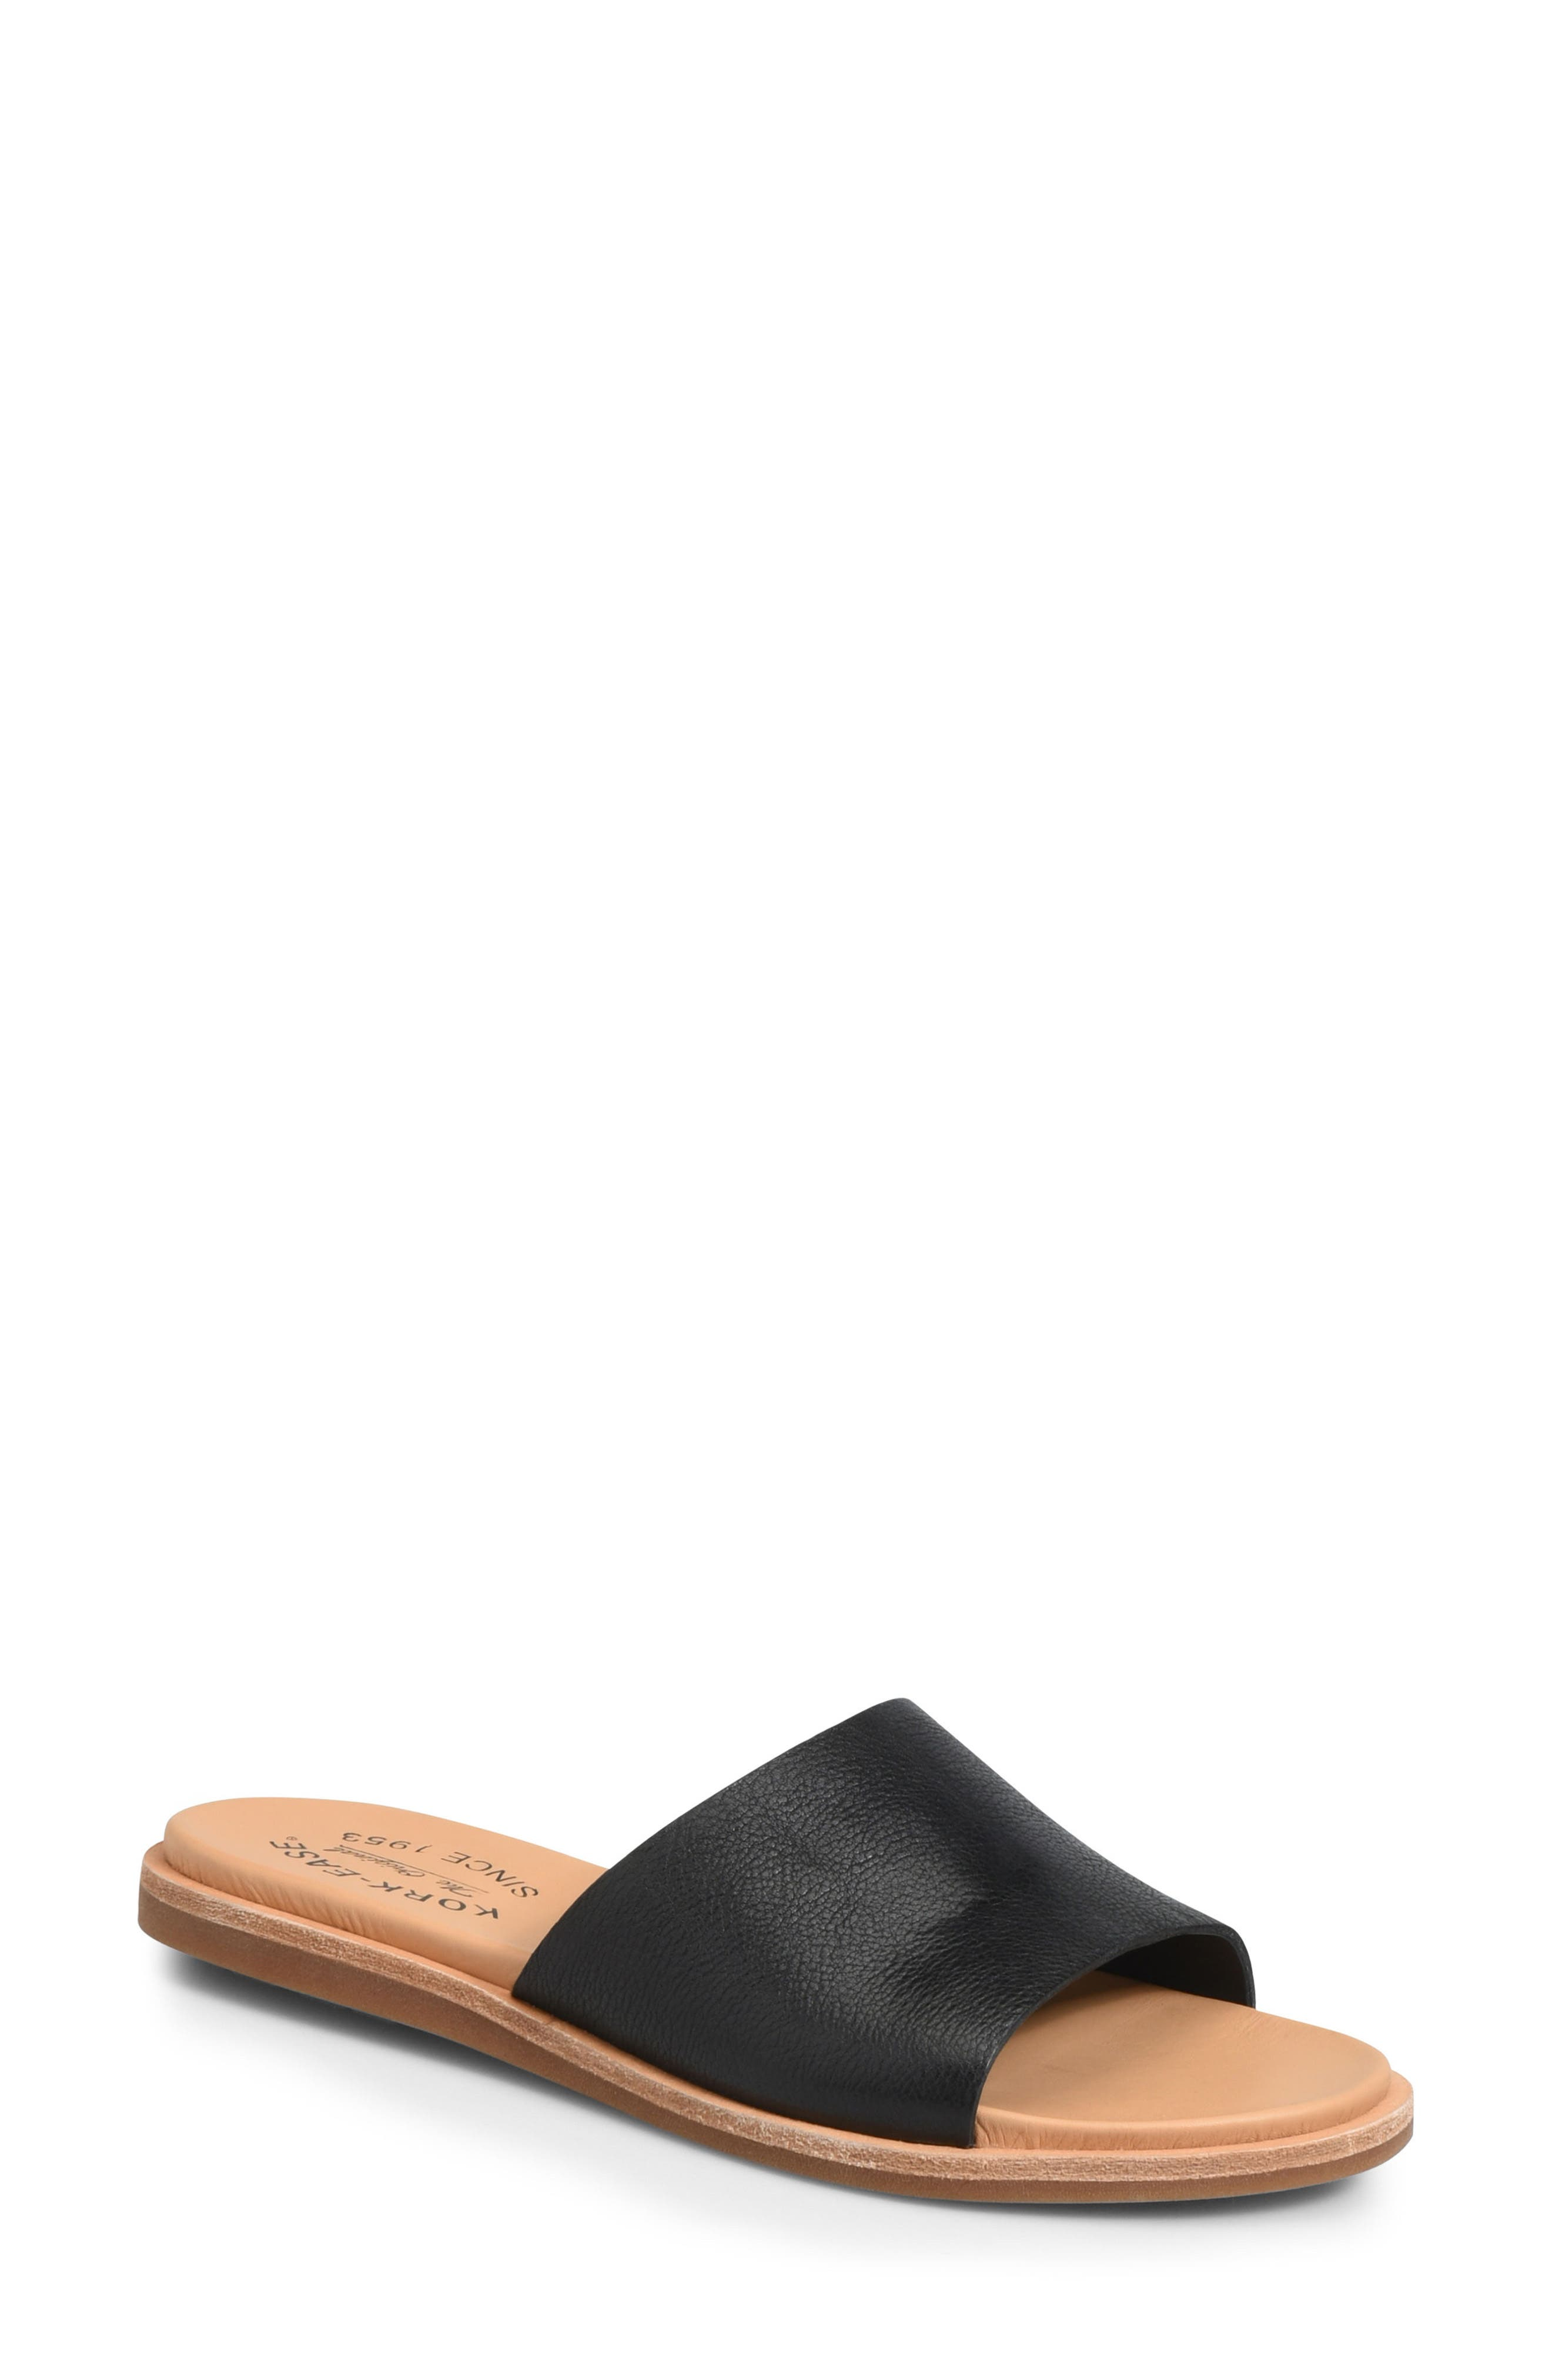 Gila Slide Sandal,                         Main,                         color, BLACK LEATHER